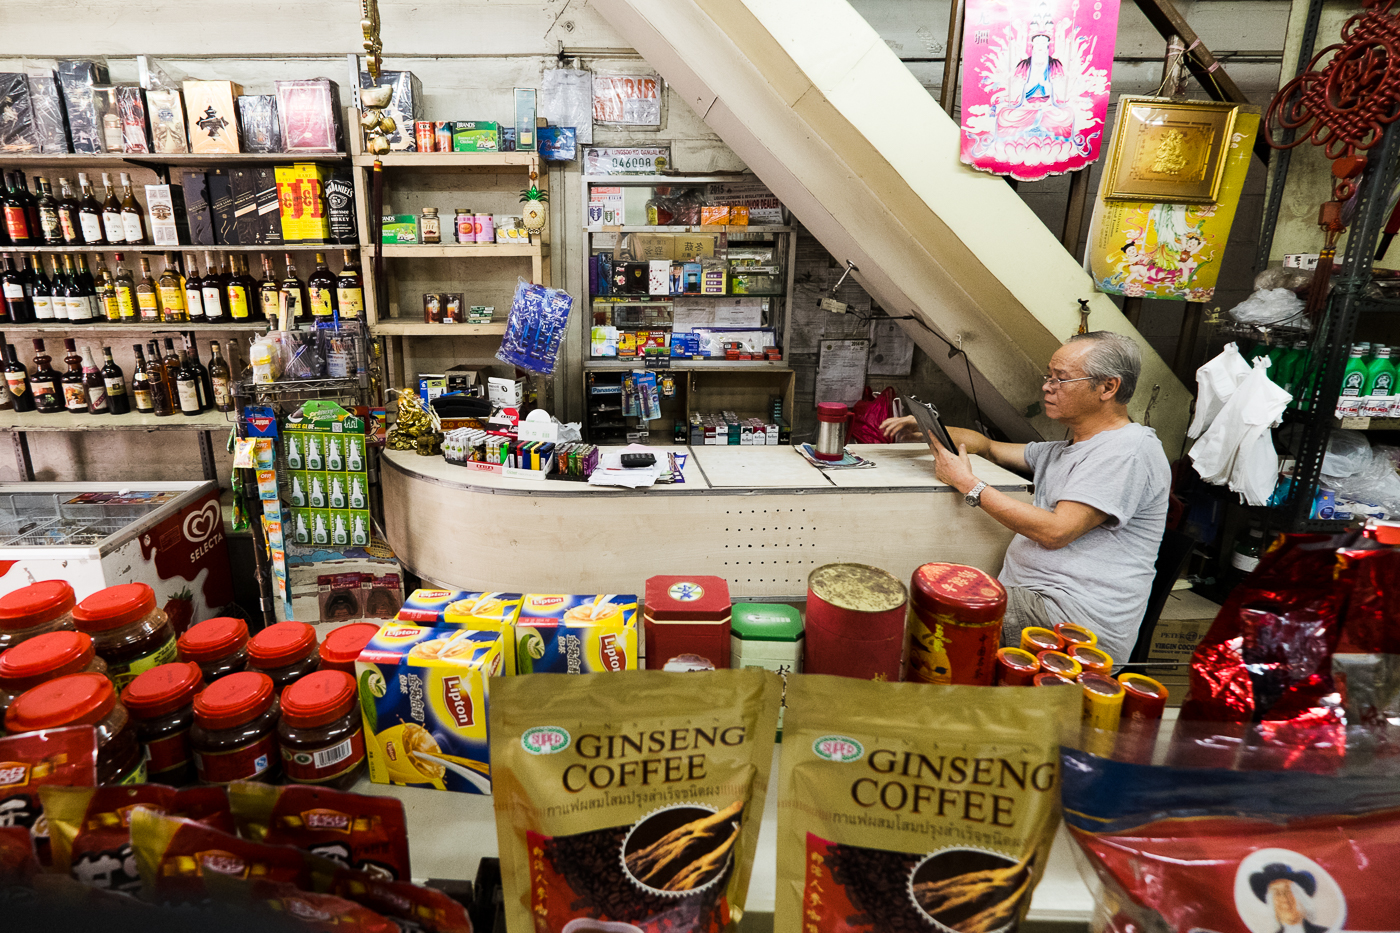 Kangsheng Trading is a Chinese convenience store that sells imported snacks and cooking ingredients.